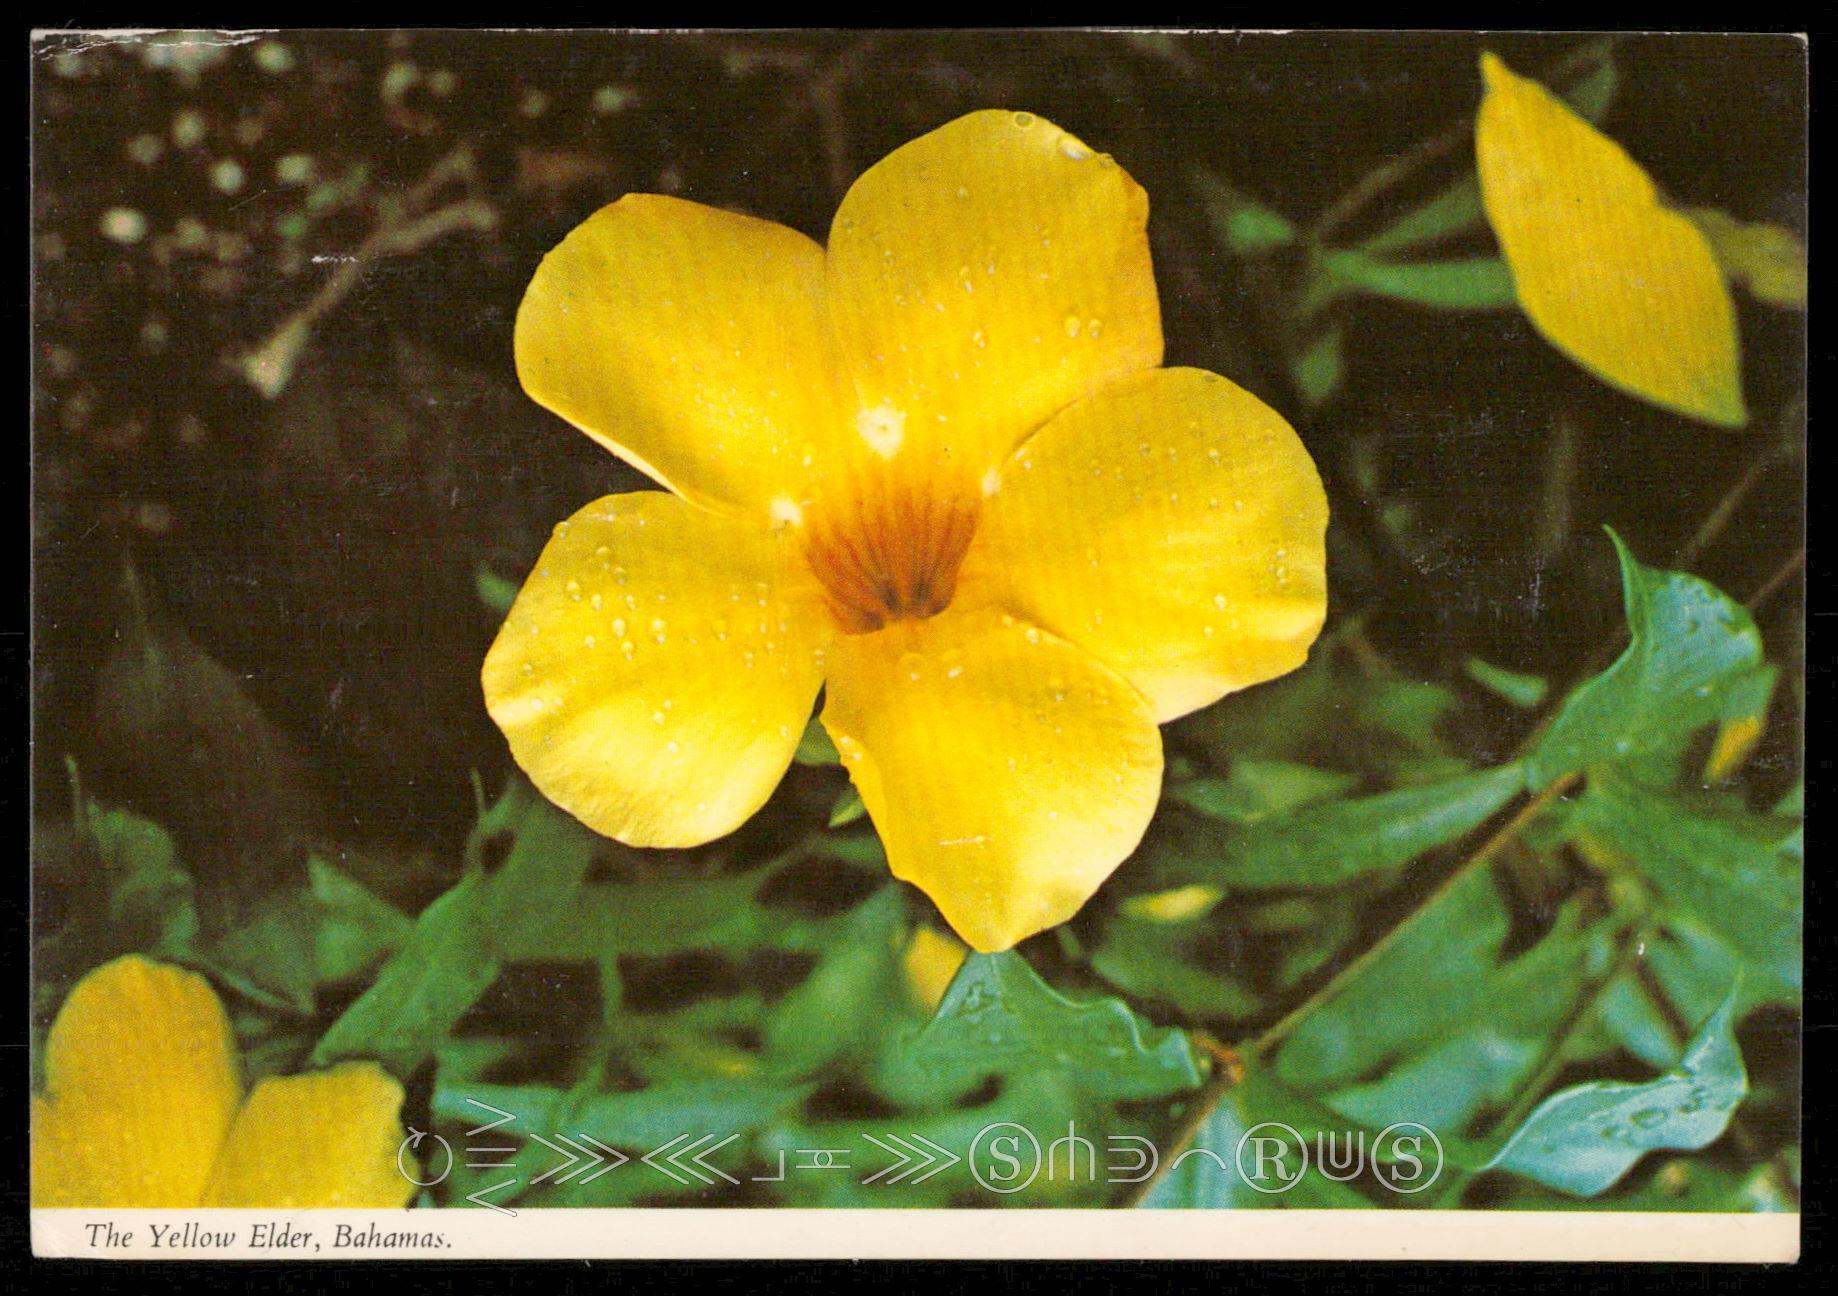 The Yellow Elder Bahamas Hippostcard